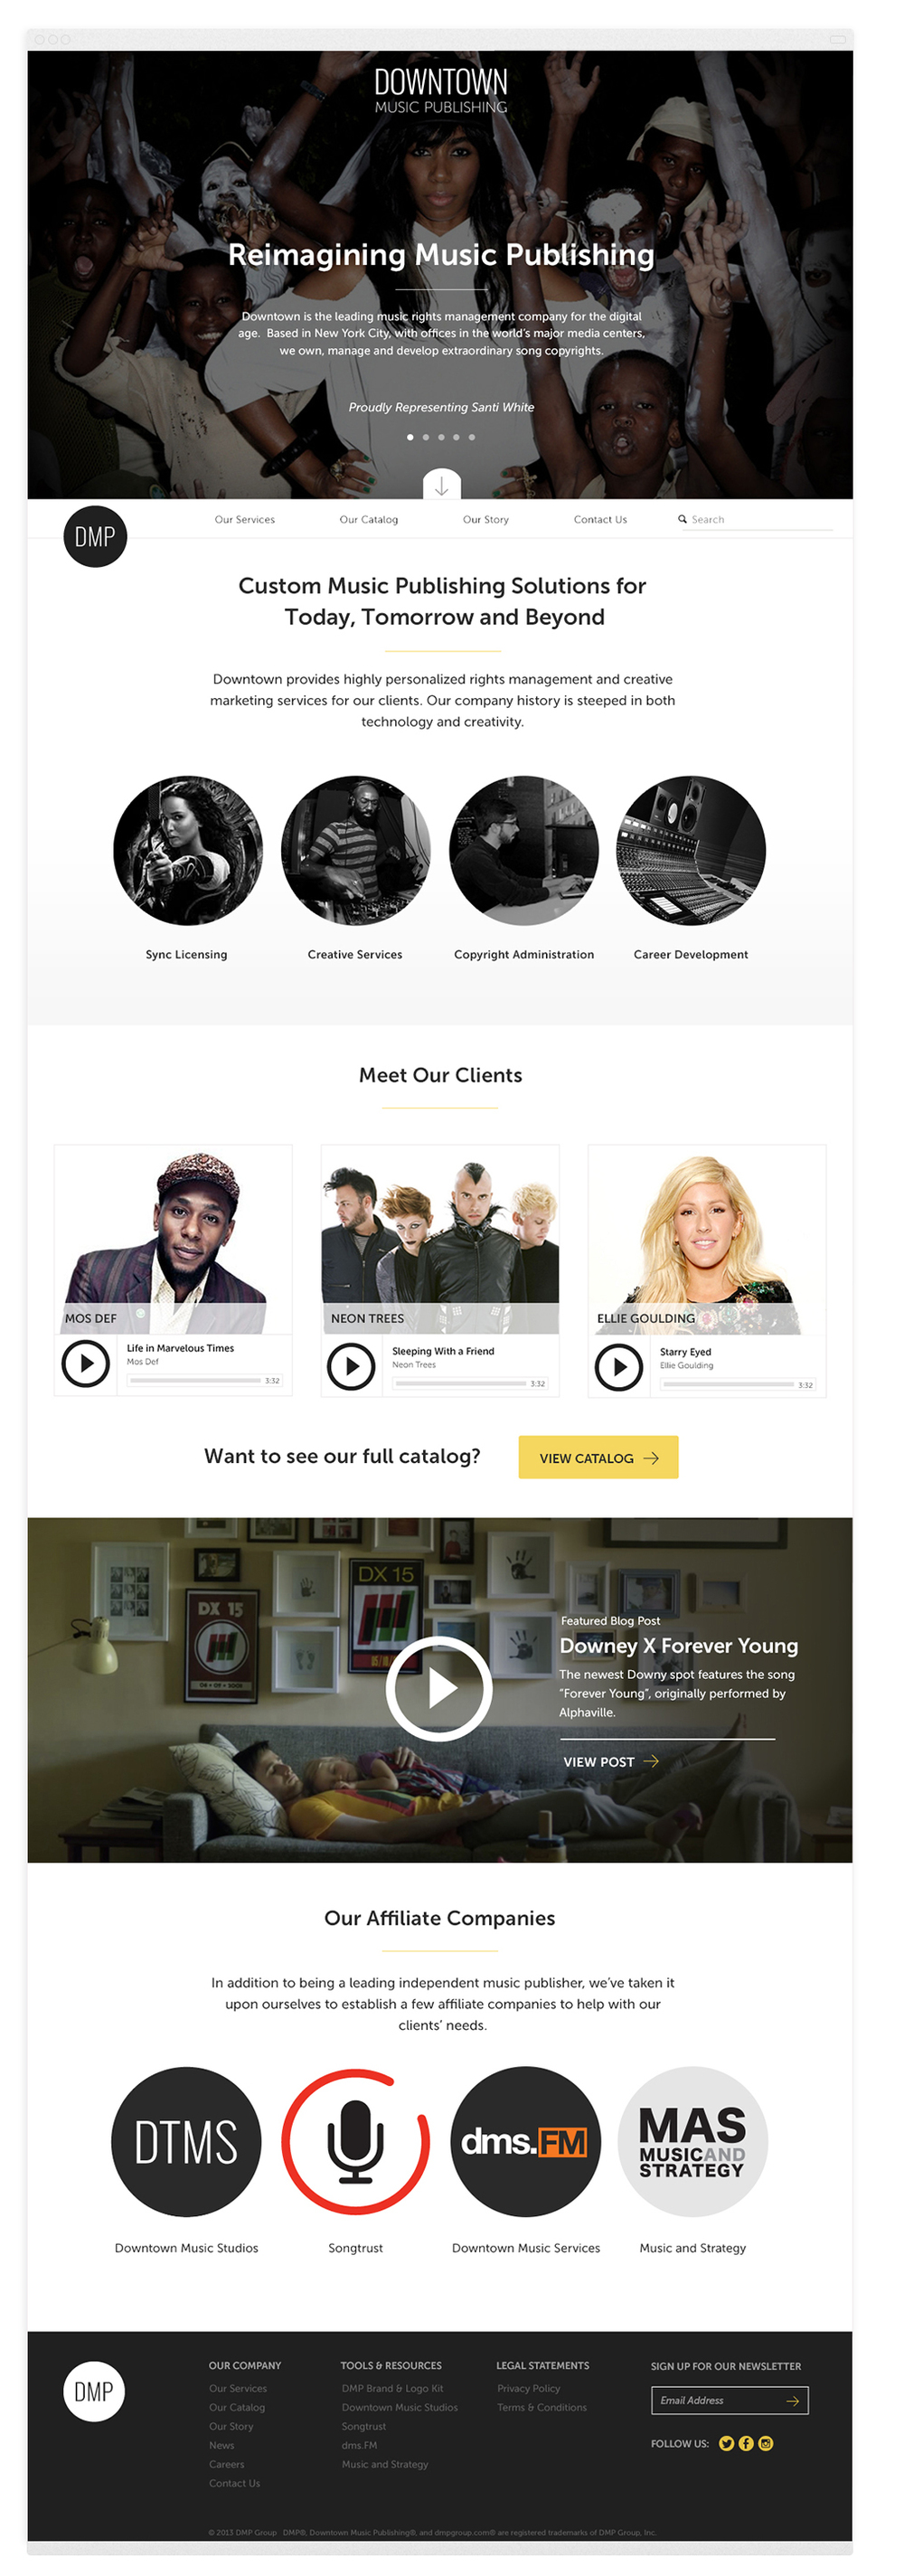 zmaic-downtown-music-publishing-dmp_responsive-web-design-strategy-home-homepage.jpg